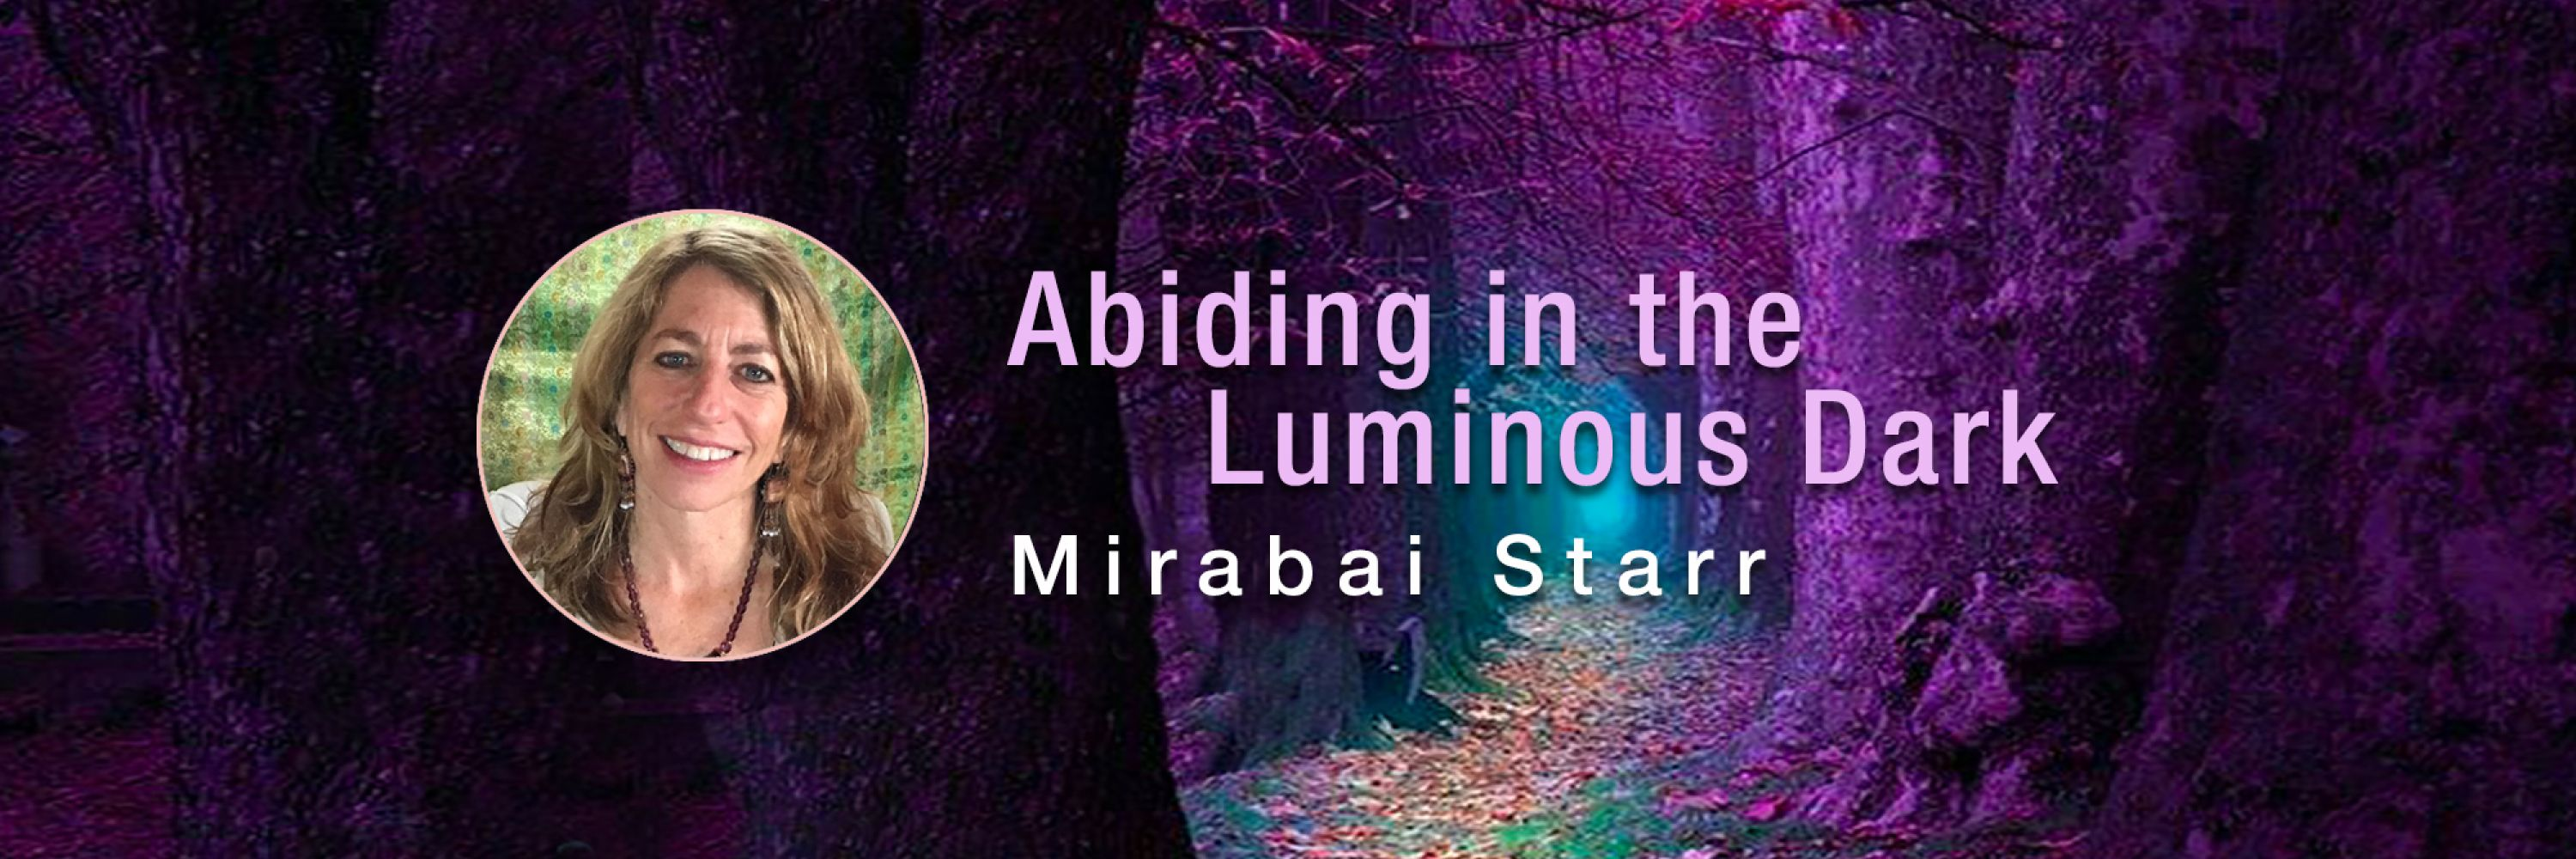 Abiding in the Luminous Dark